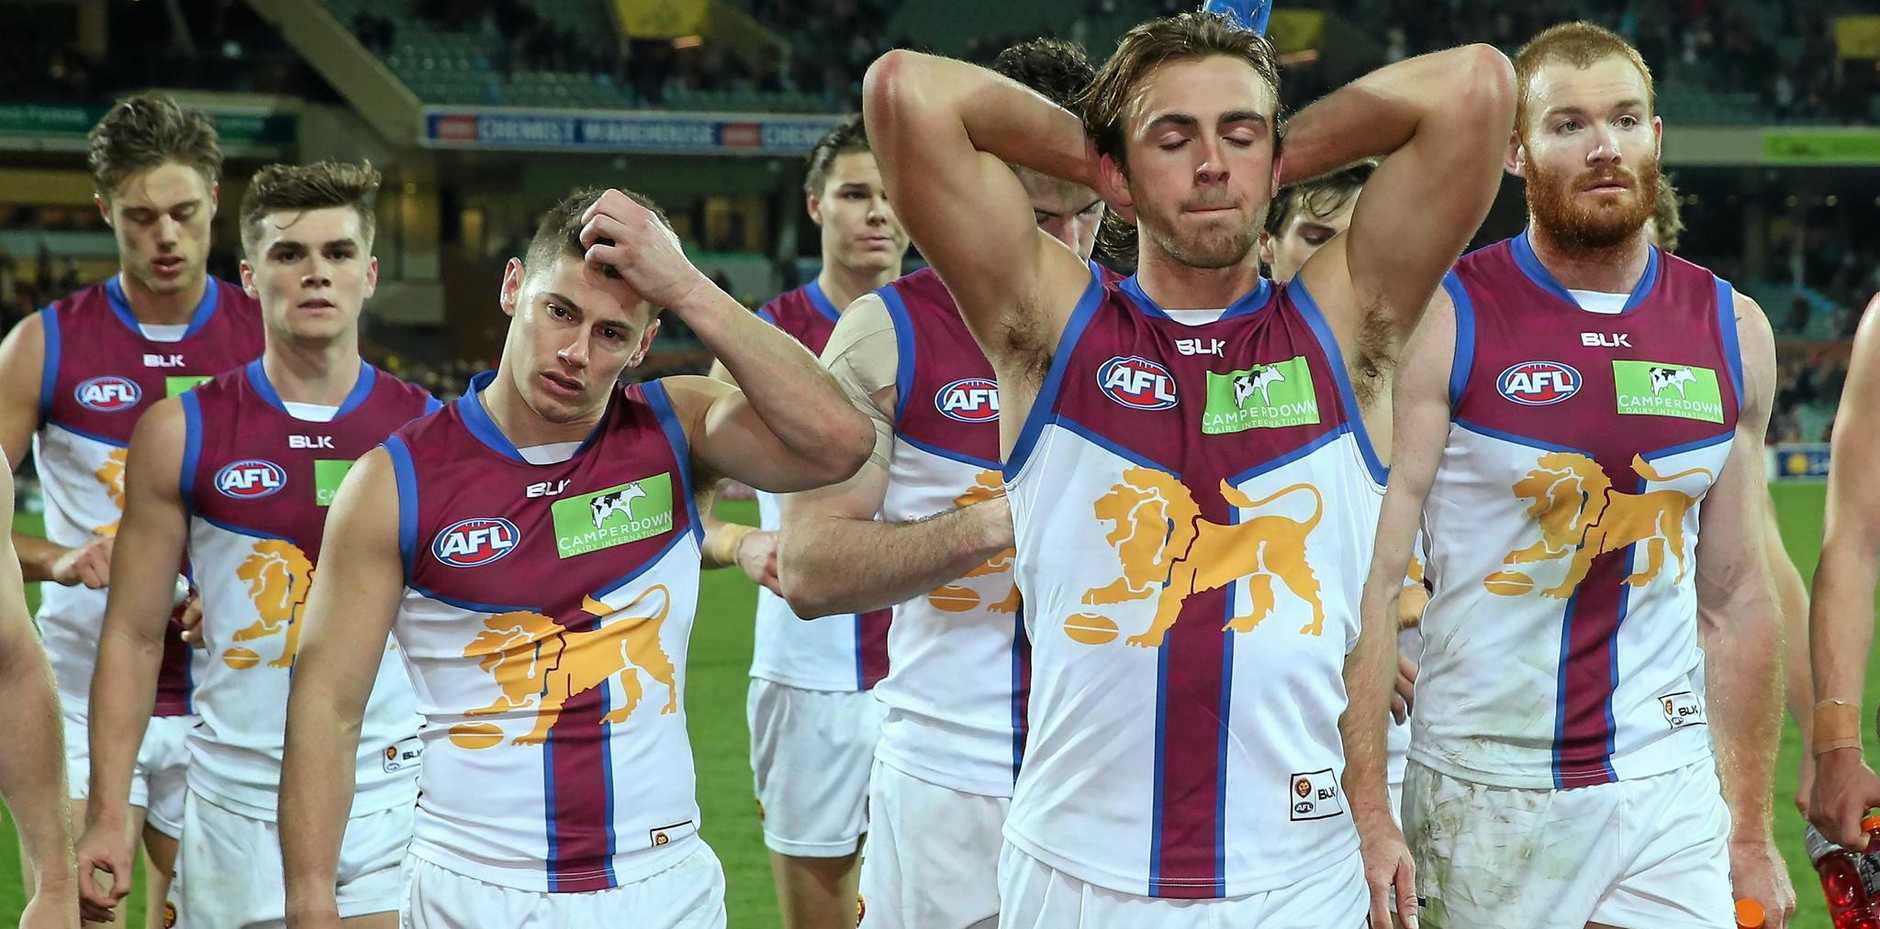 No answers, Lions players leave Adelaide Oval after their team lost to the Crows.